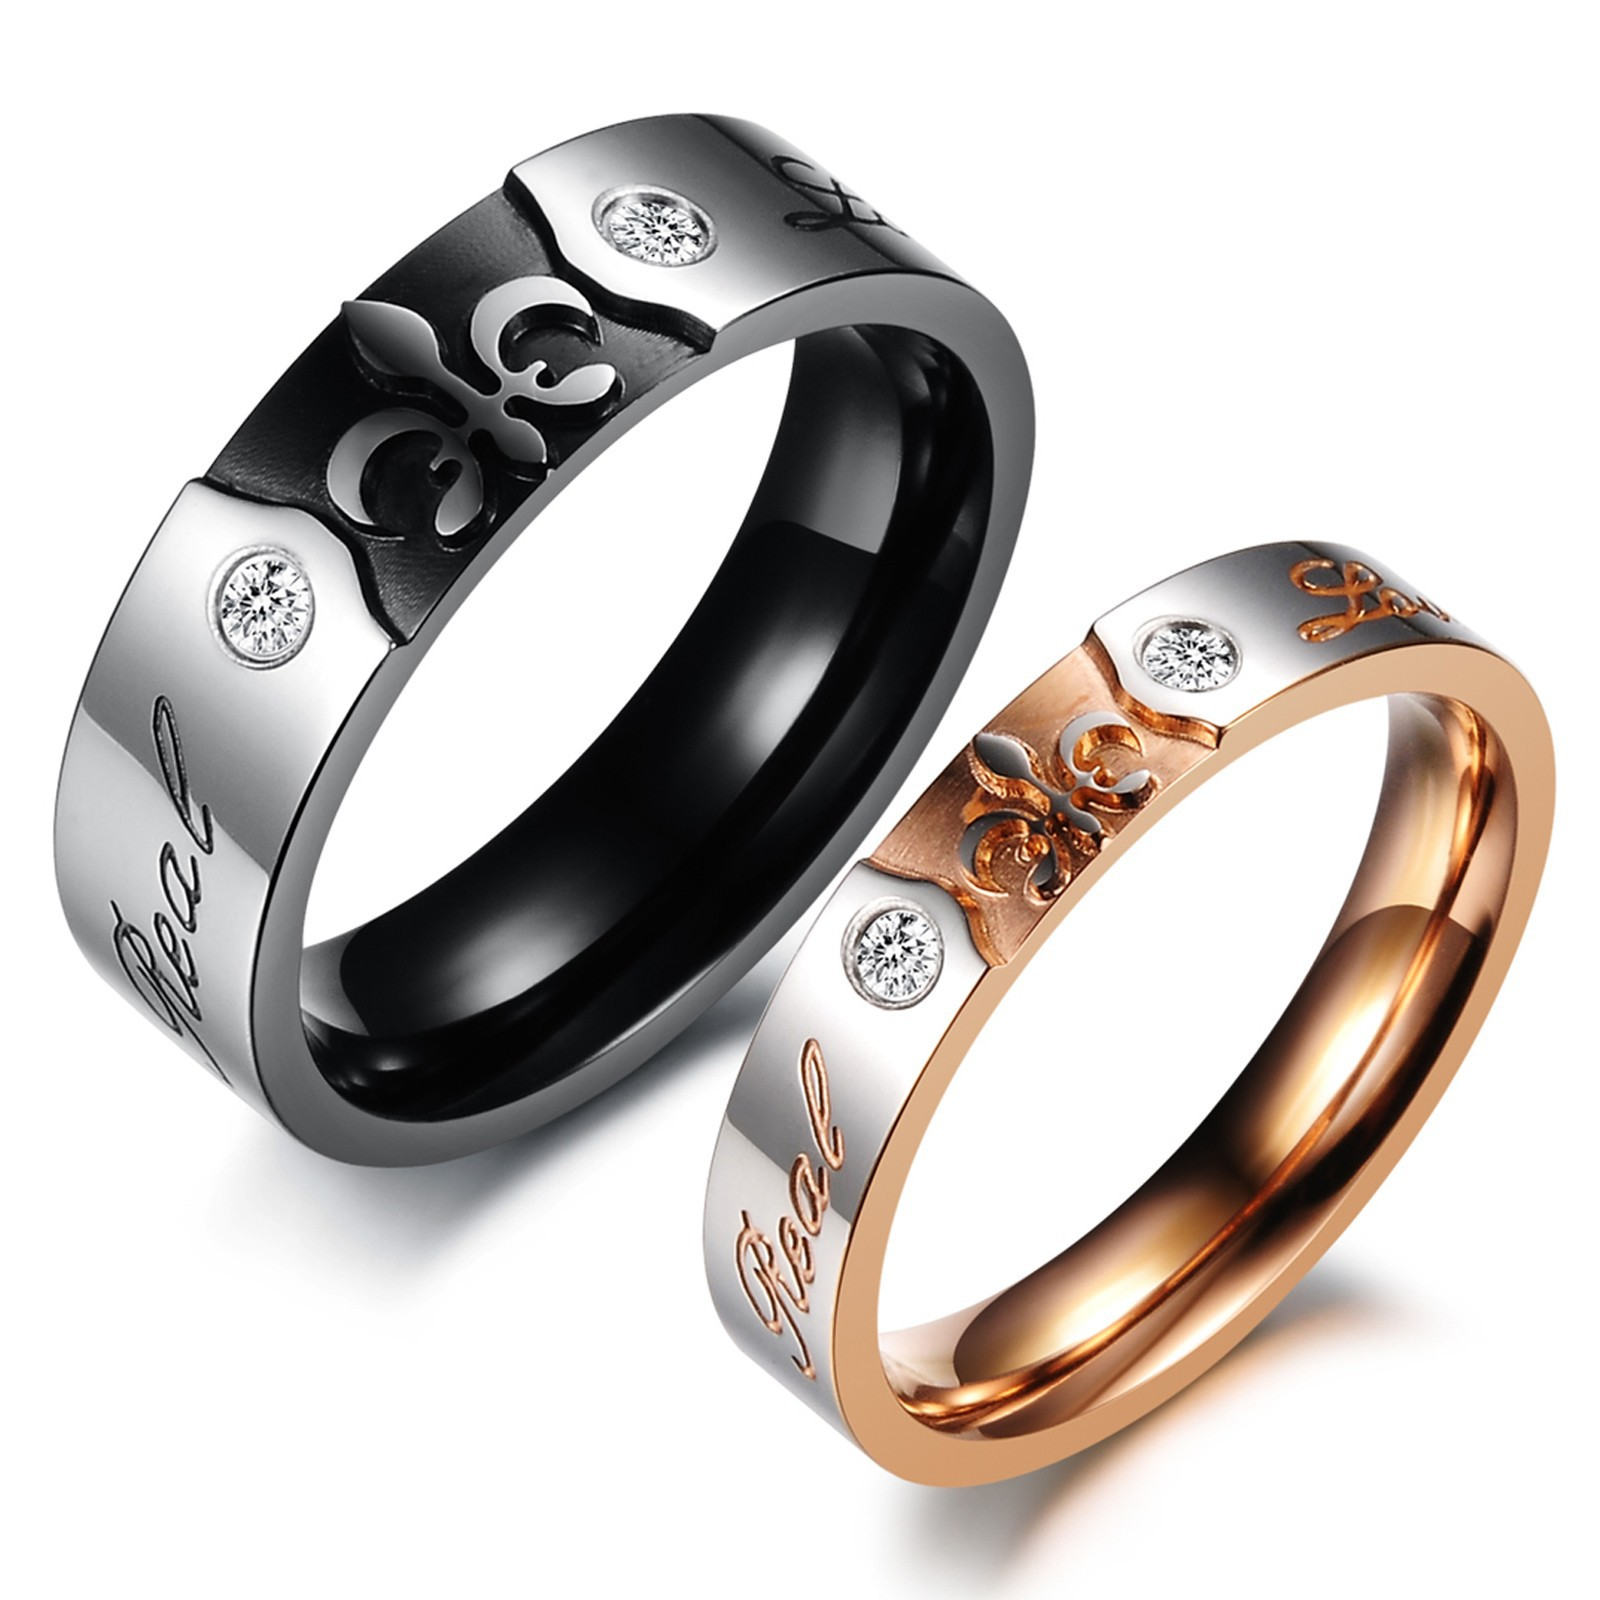 2 Pieces 316L Stainless Steel Jewelry Couple Ring Set Gold Color